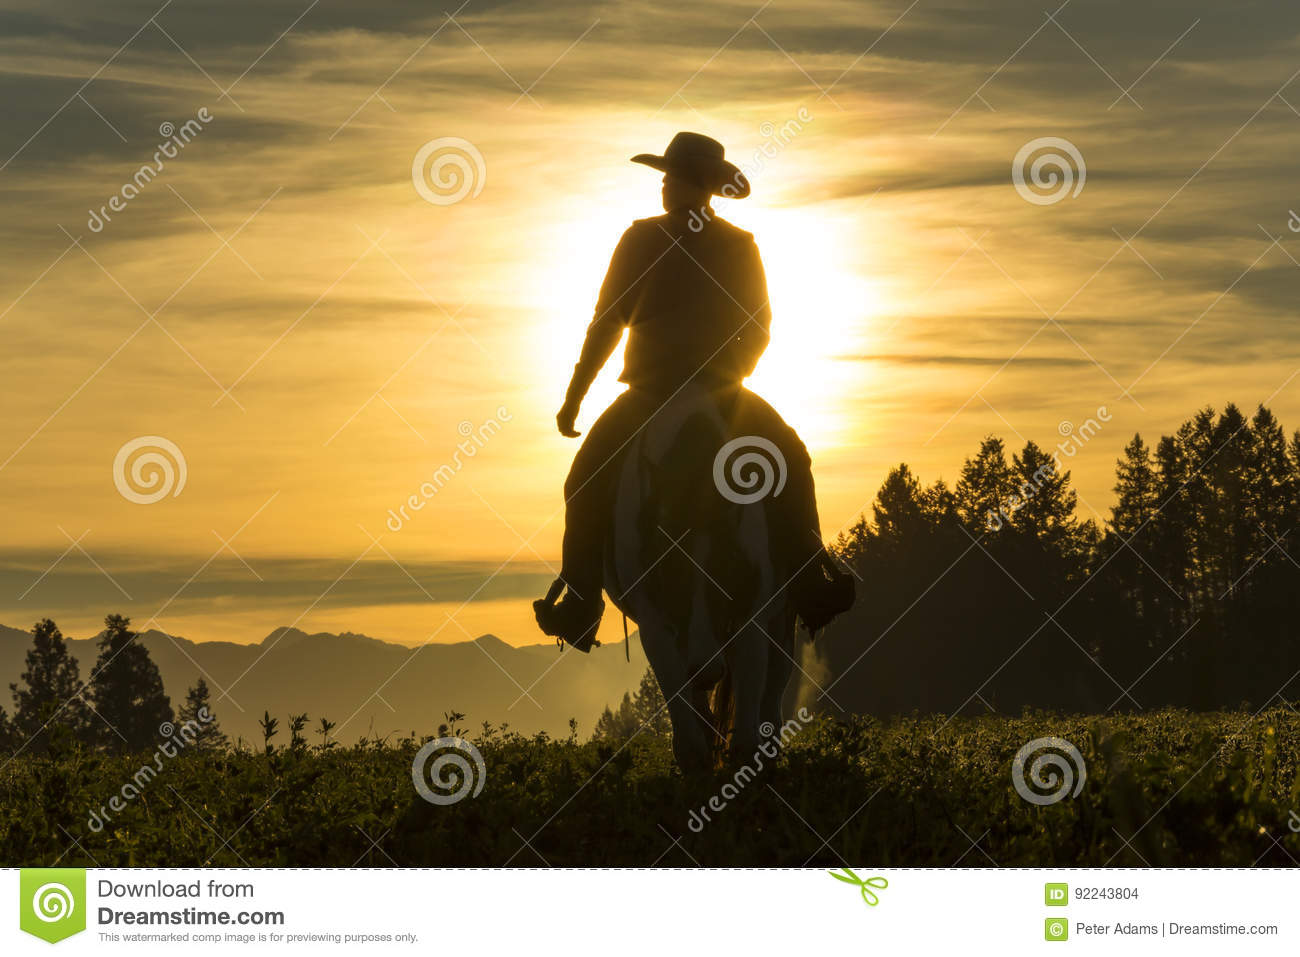 Cowboy riding across grassland with mountains in the background